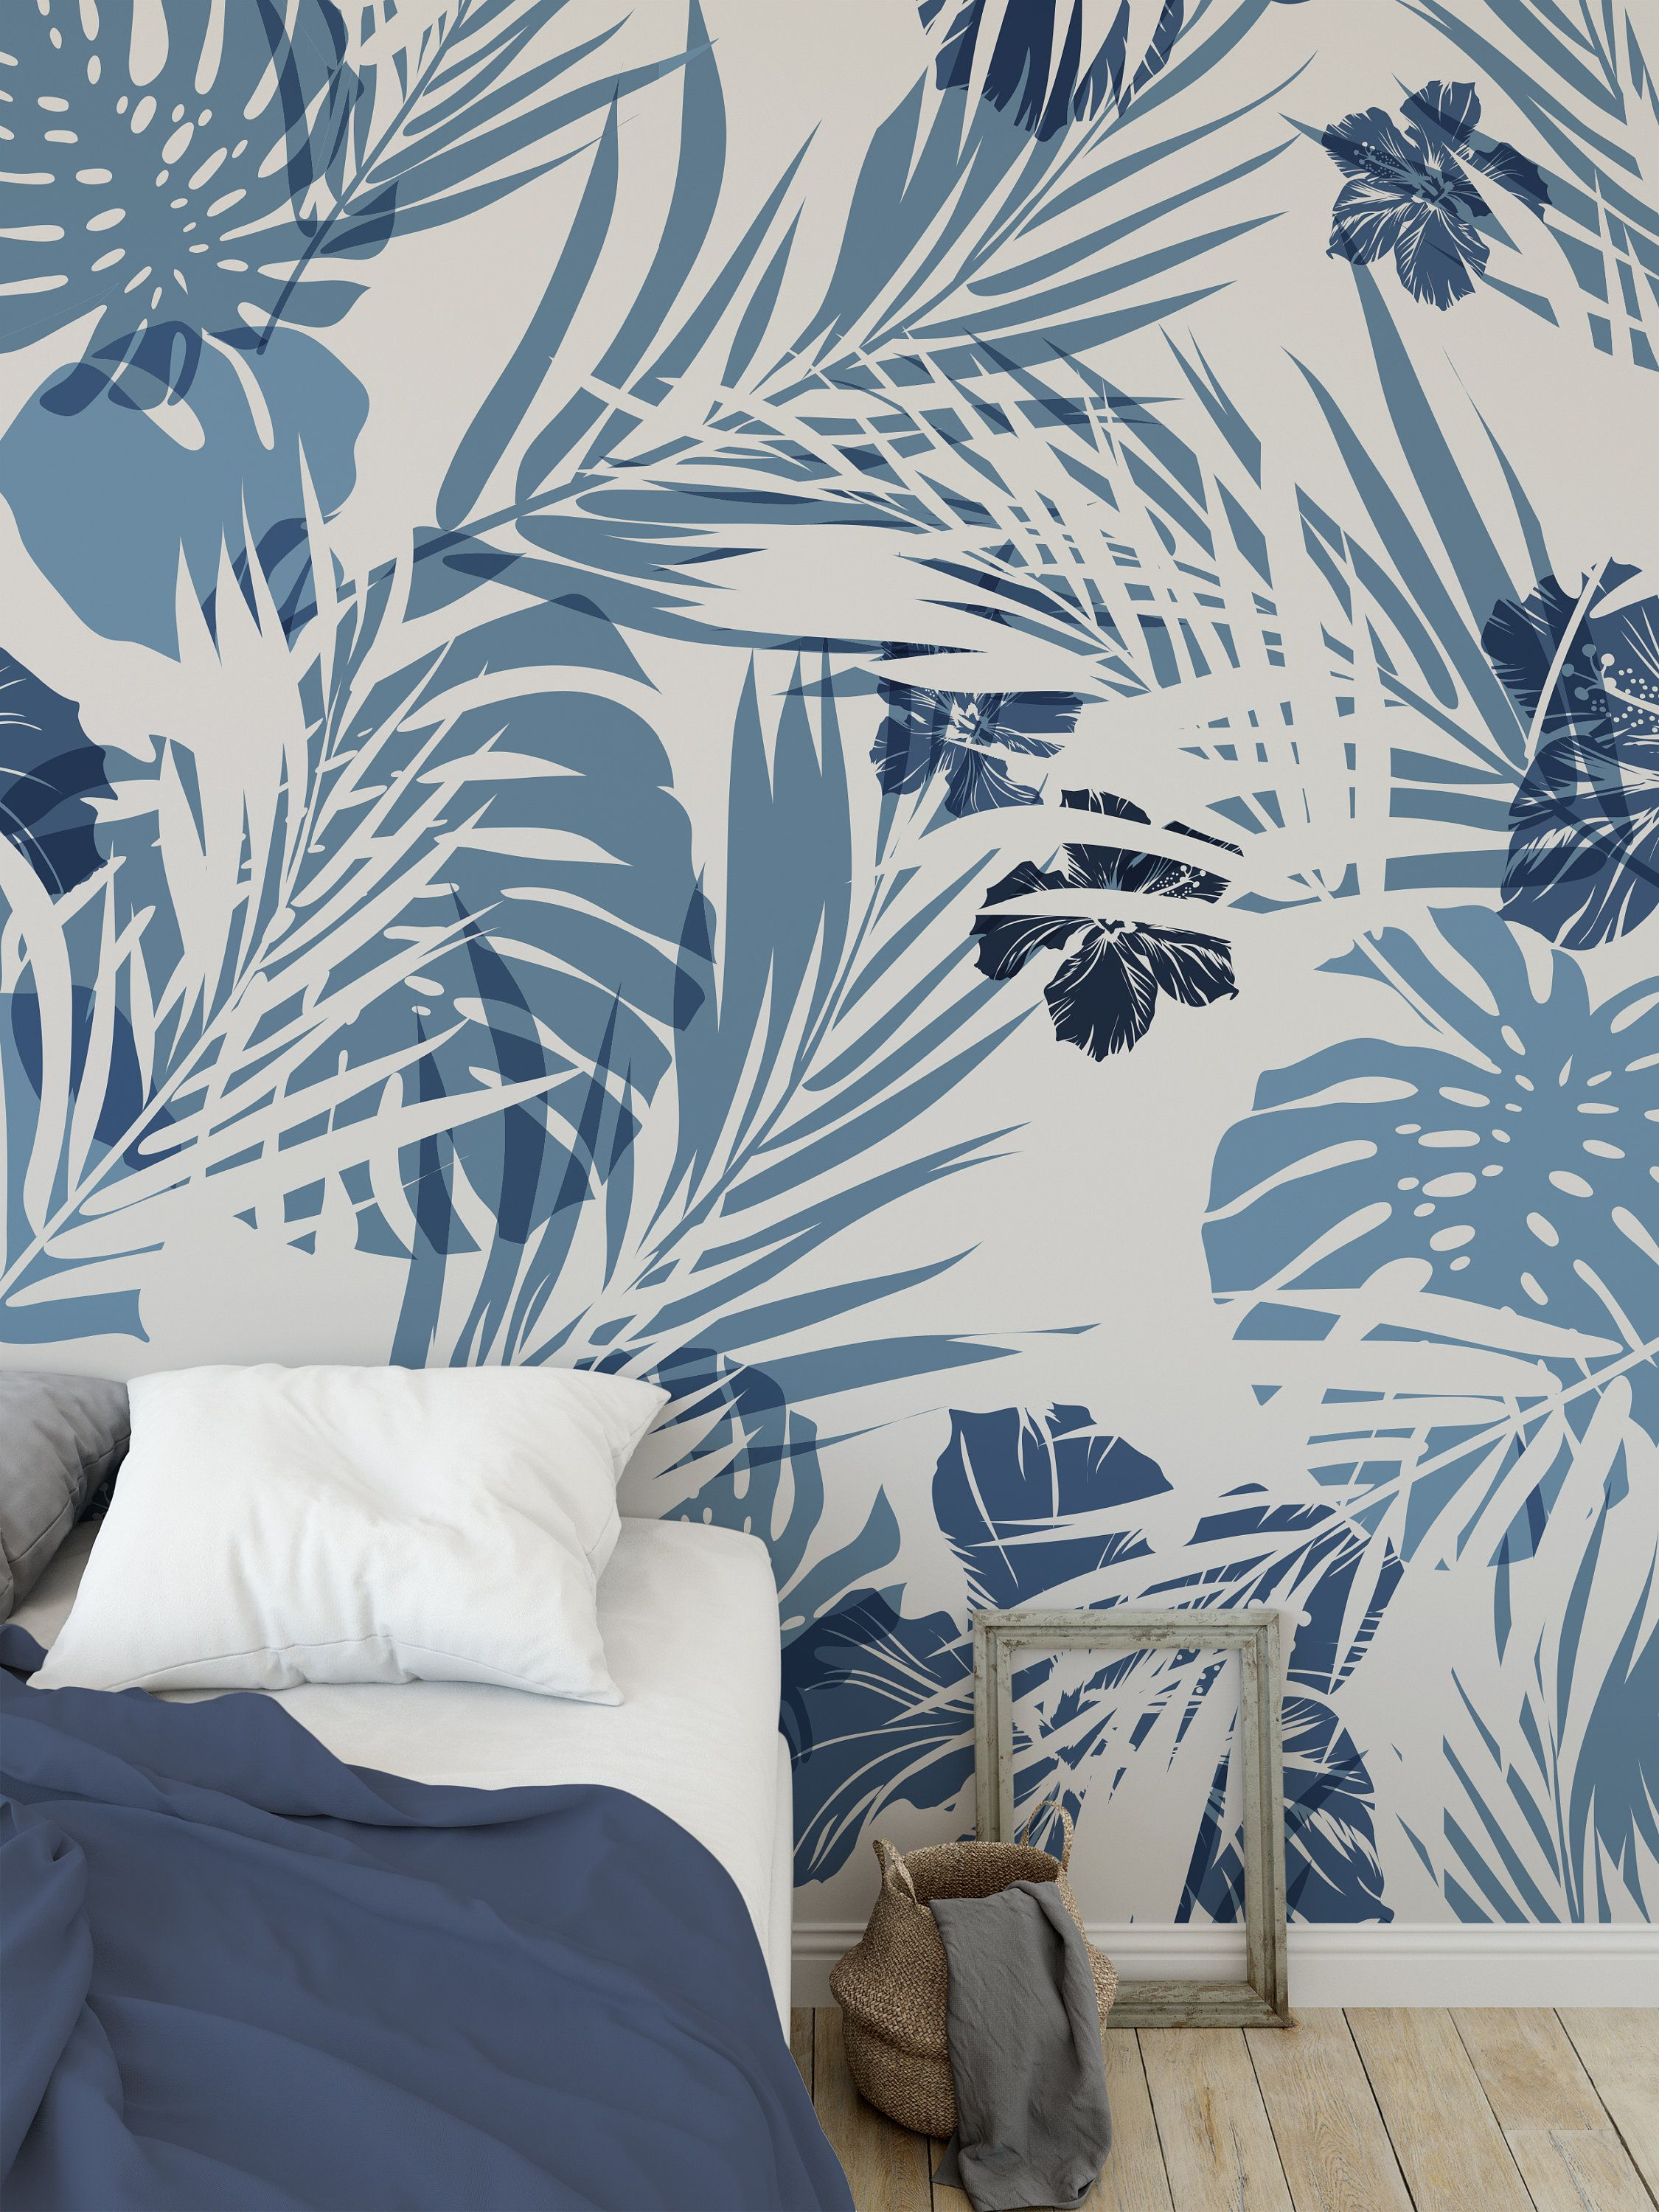 Removable peel and stick wallpaper Blue Tropical Leaf palm wallpaper #tropicalpattern